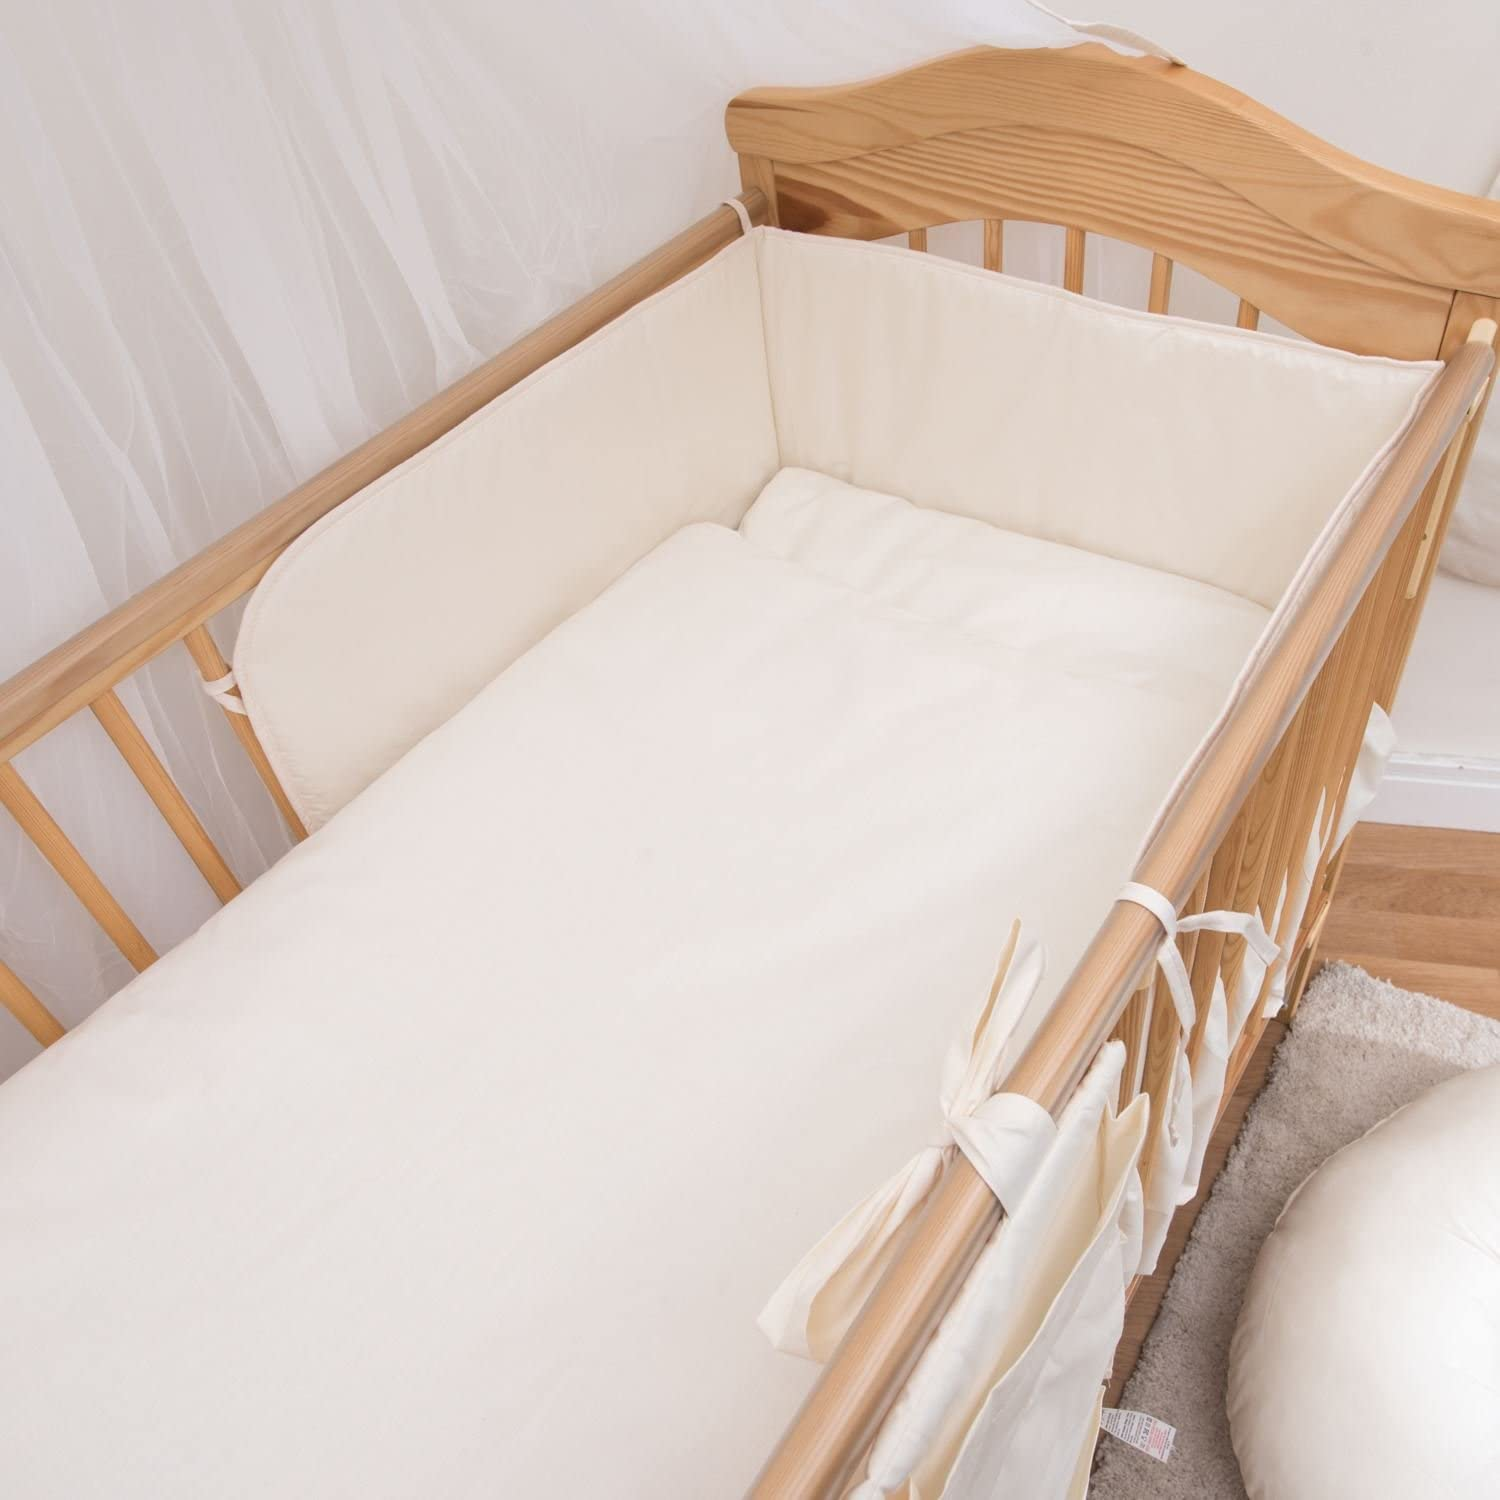 5 Piece Baby Children Bedding Set to Fit 120x60 or 140x70 cm Toddler Cot Bed to fit 140 x 70 cm Cot Bed, 20